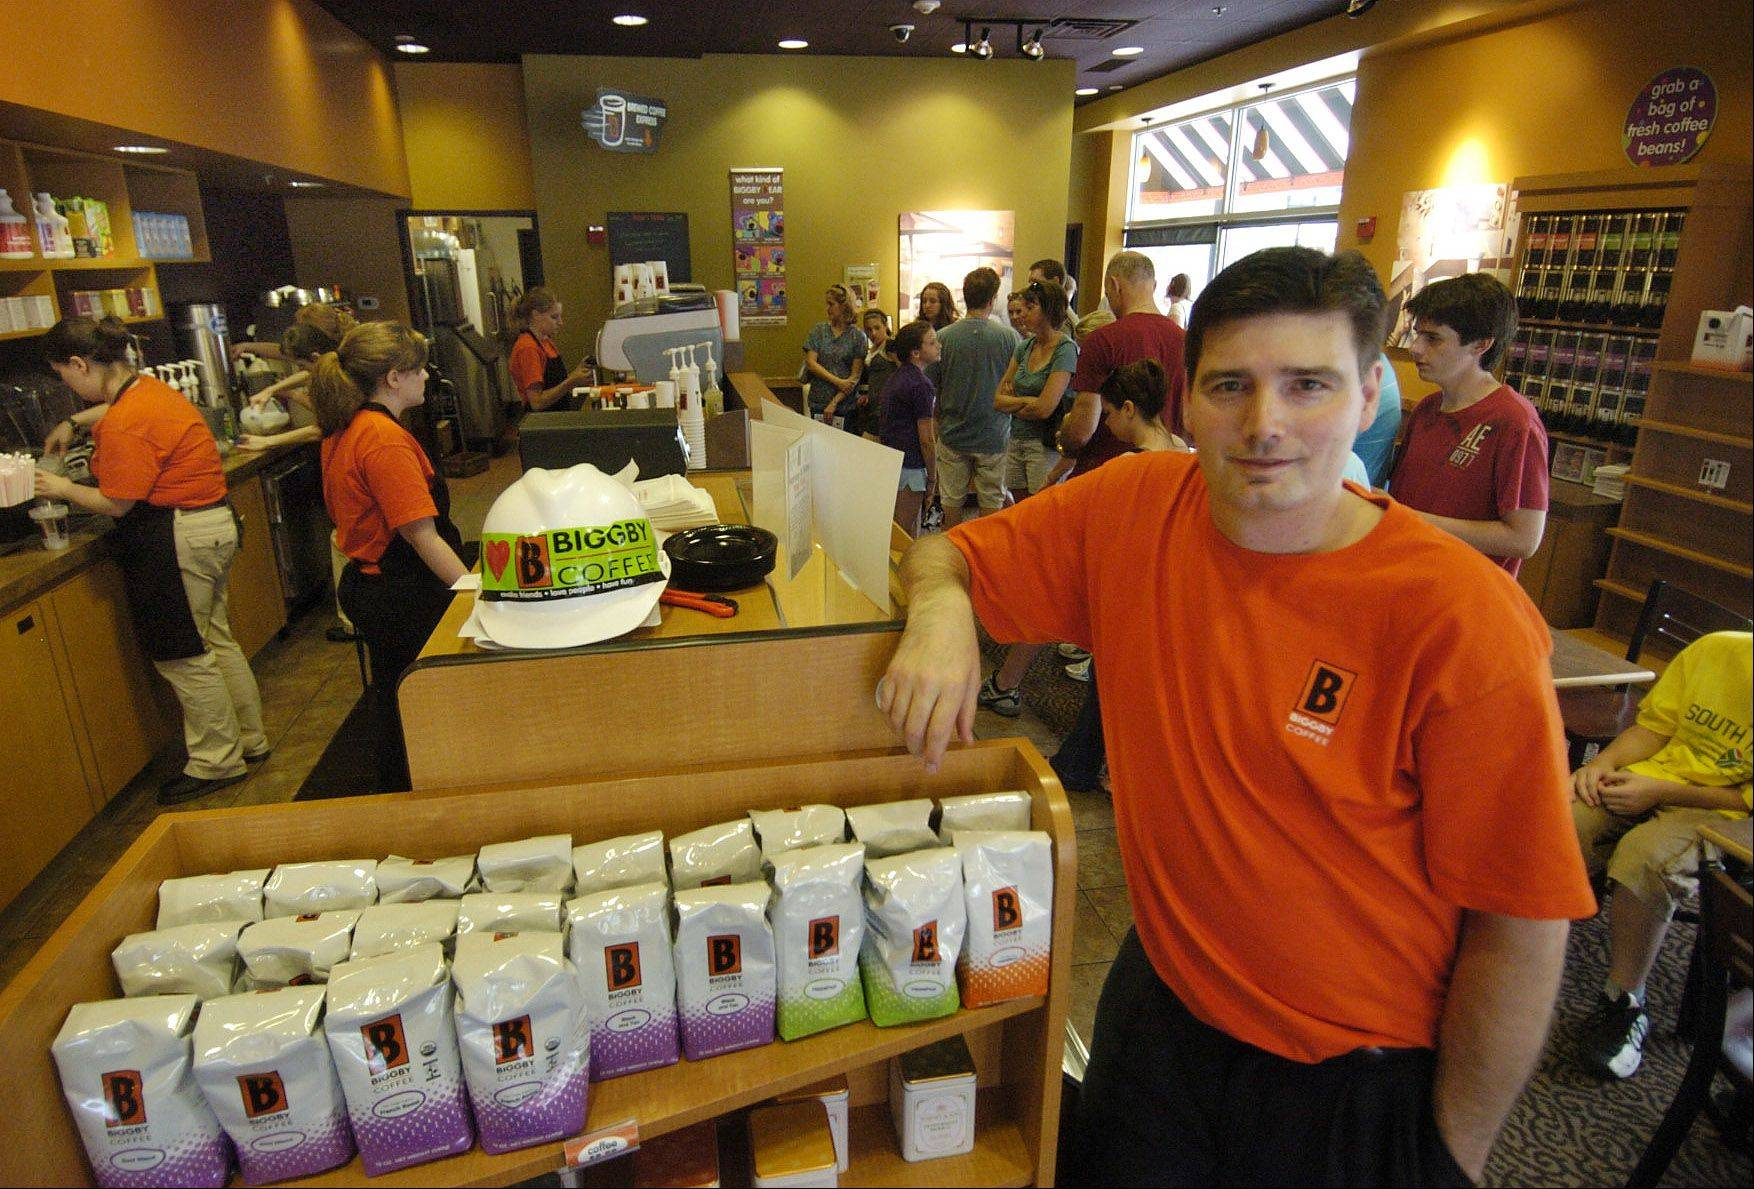 Tim Mickelson was the owner of Biggby Coffee shop in Arlington Heights when this picture was taken in 2010. The coffee house closed this week.